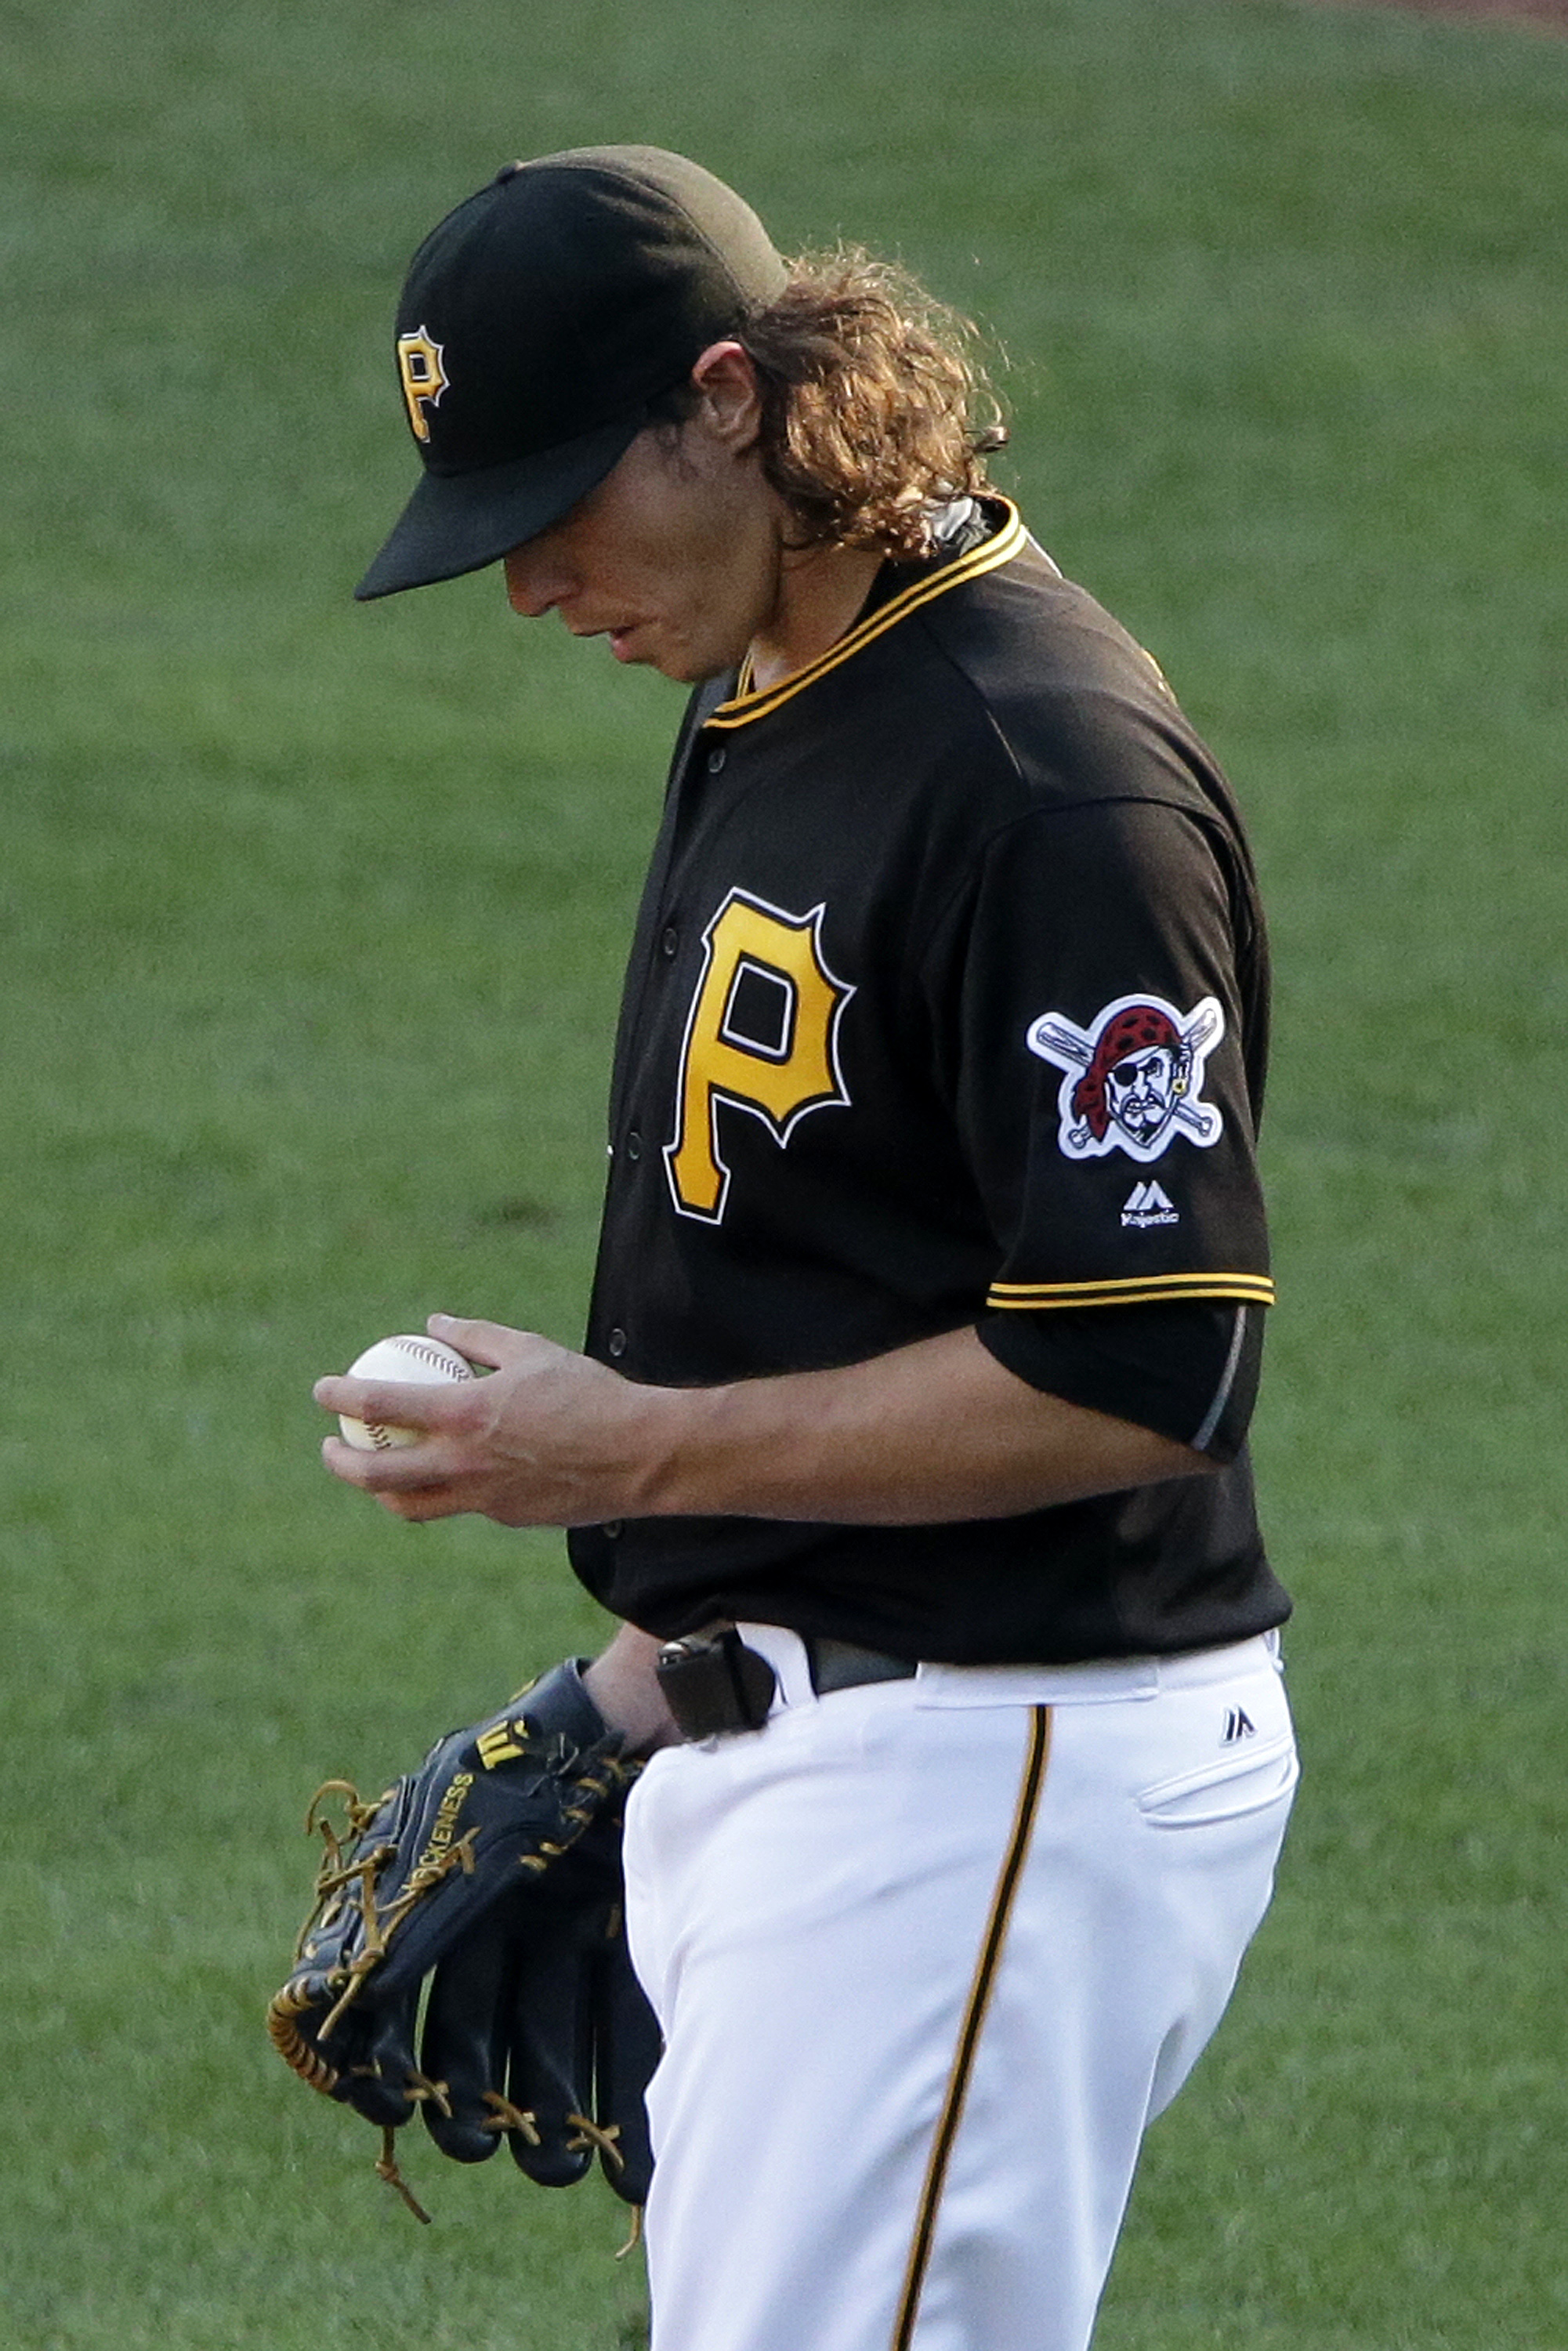 Pittsburgh Pirates relief pitcher Jeff Locke walks back to the mound after giving up a two-run single to St. Louis Cardinals starting pitcher Adam Wainwright during the fourth inning of a baseball game in Pittsburgh, Monday, Sept. 5, 2016. (AP Photo/Gene